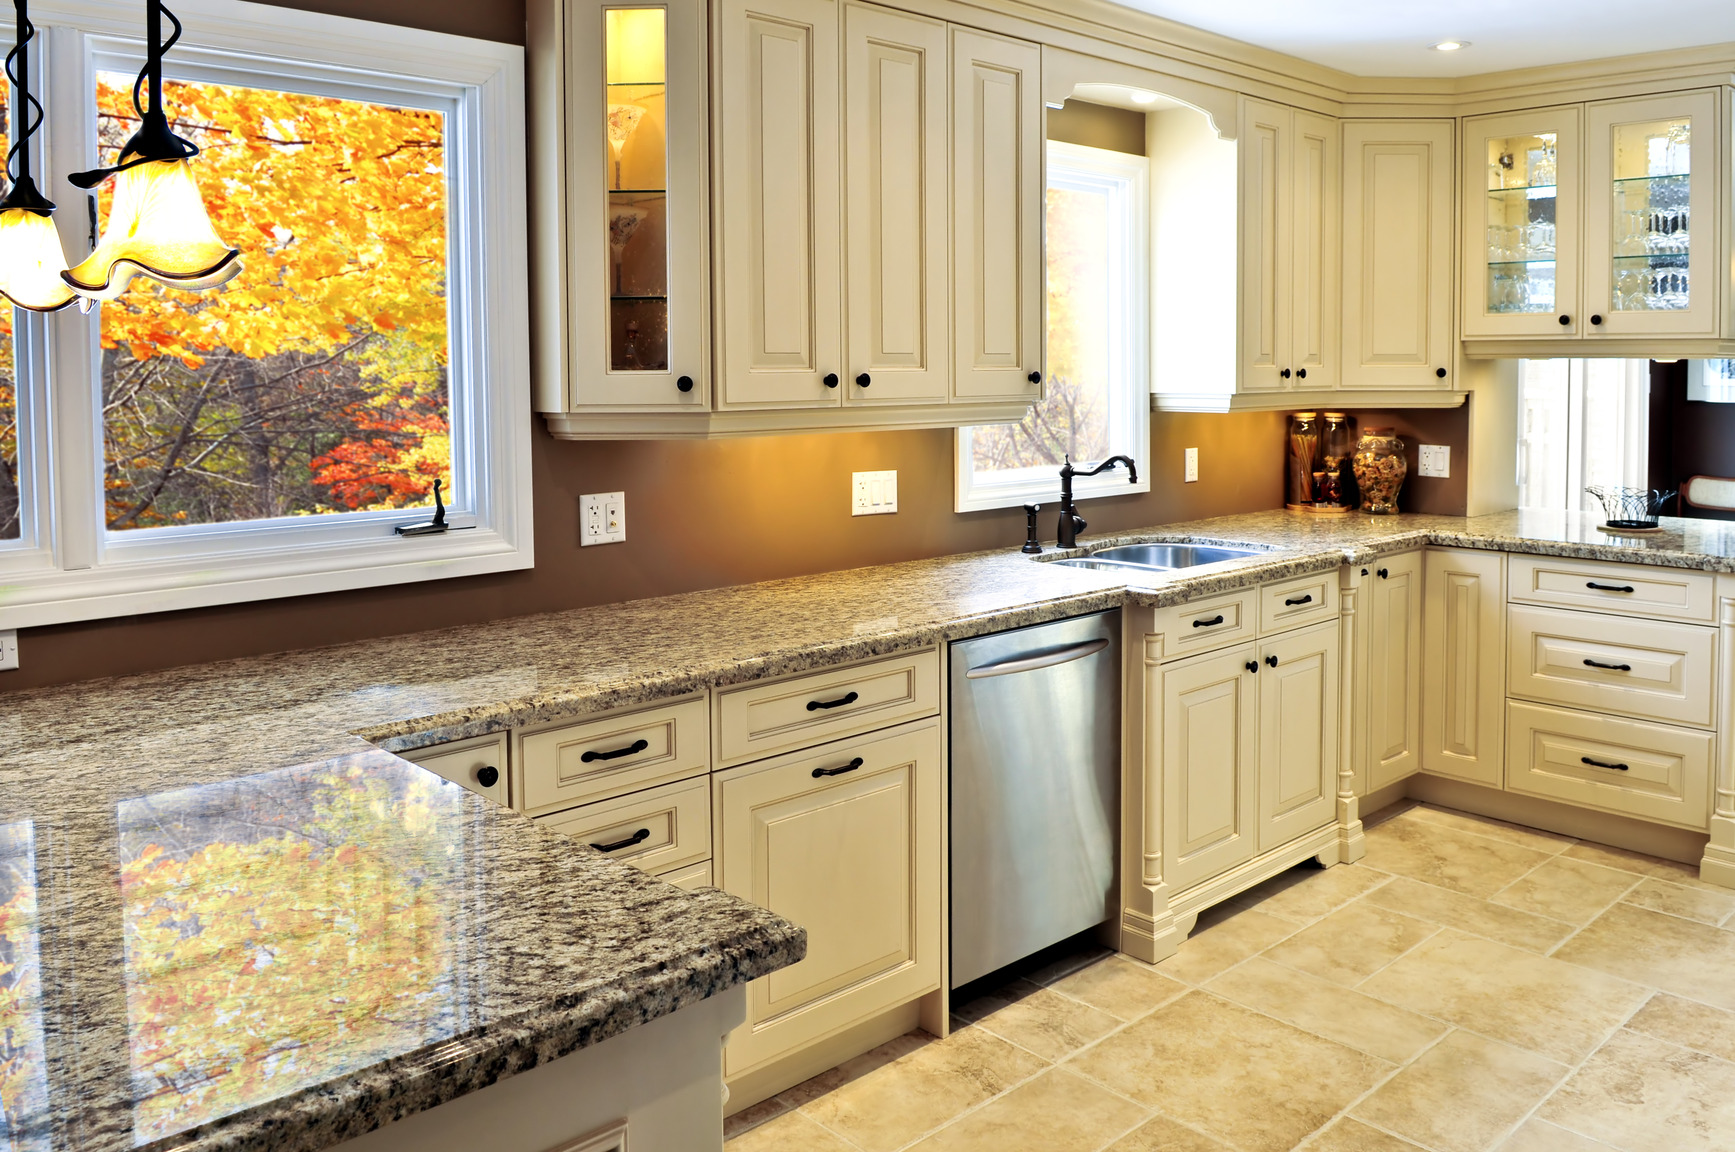 Excellent Cleaning Services for Your Home